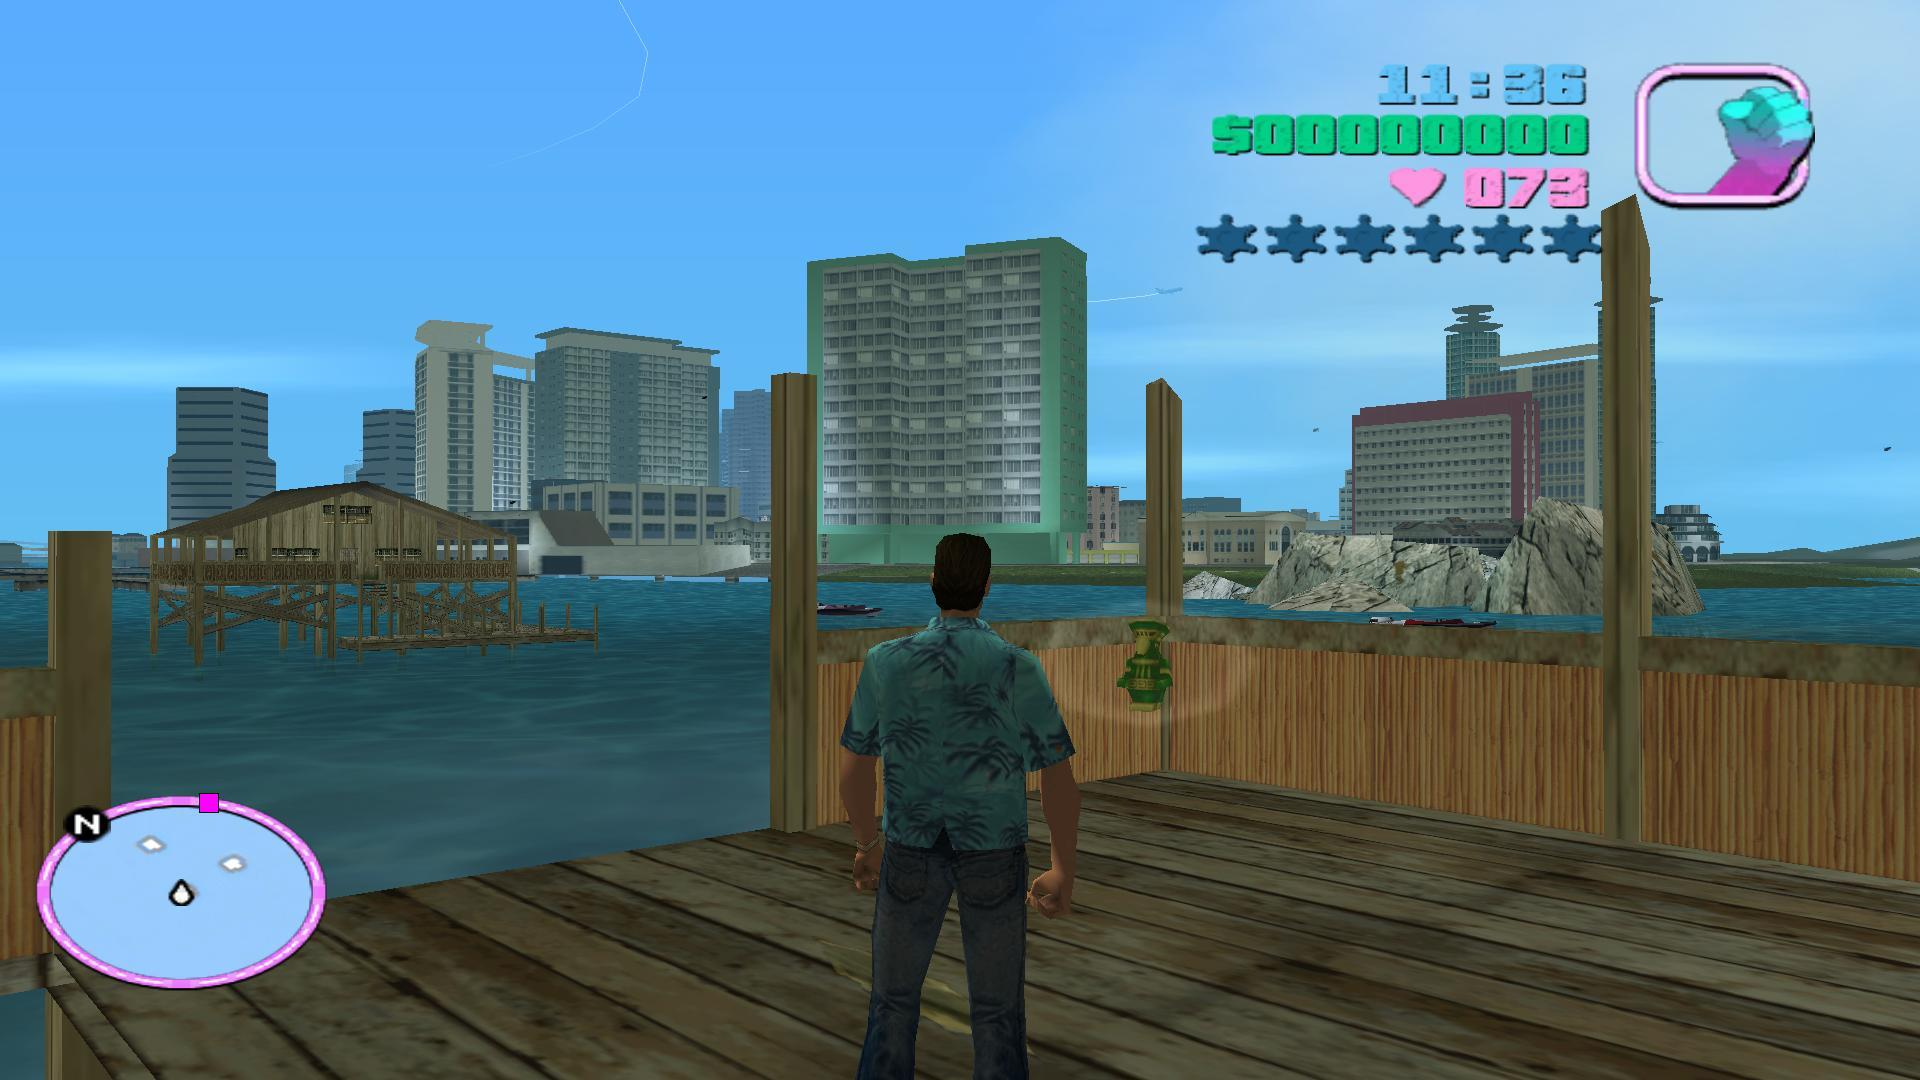 Grand Theft Auto: Vice City hidden package location guide